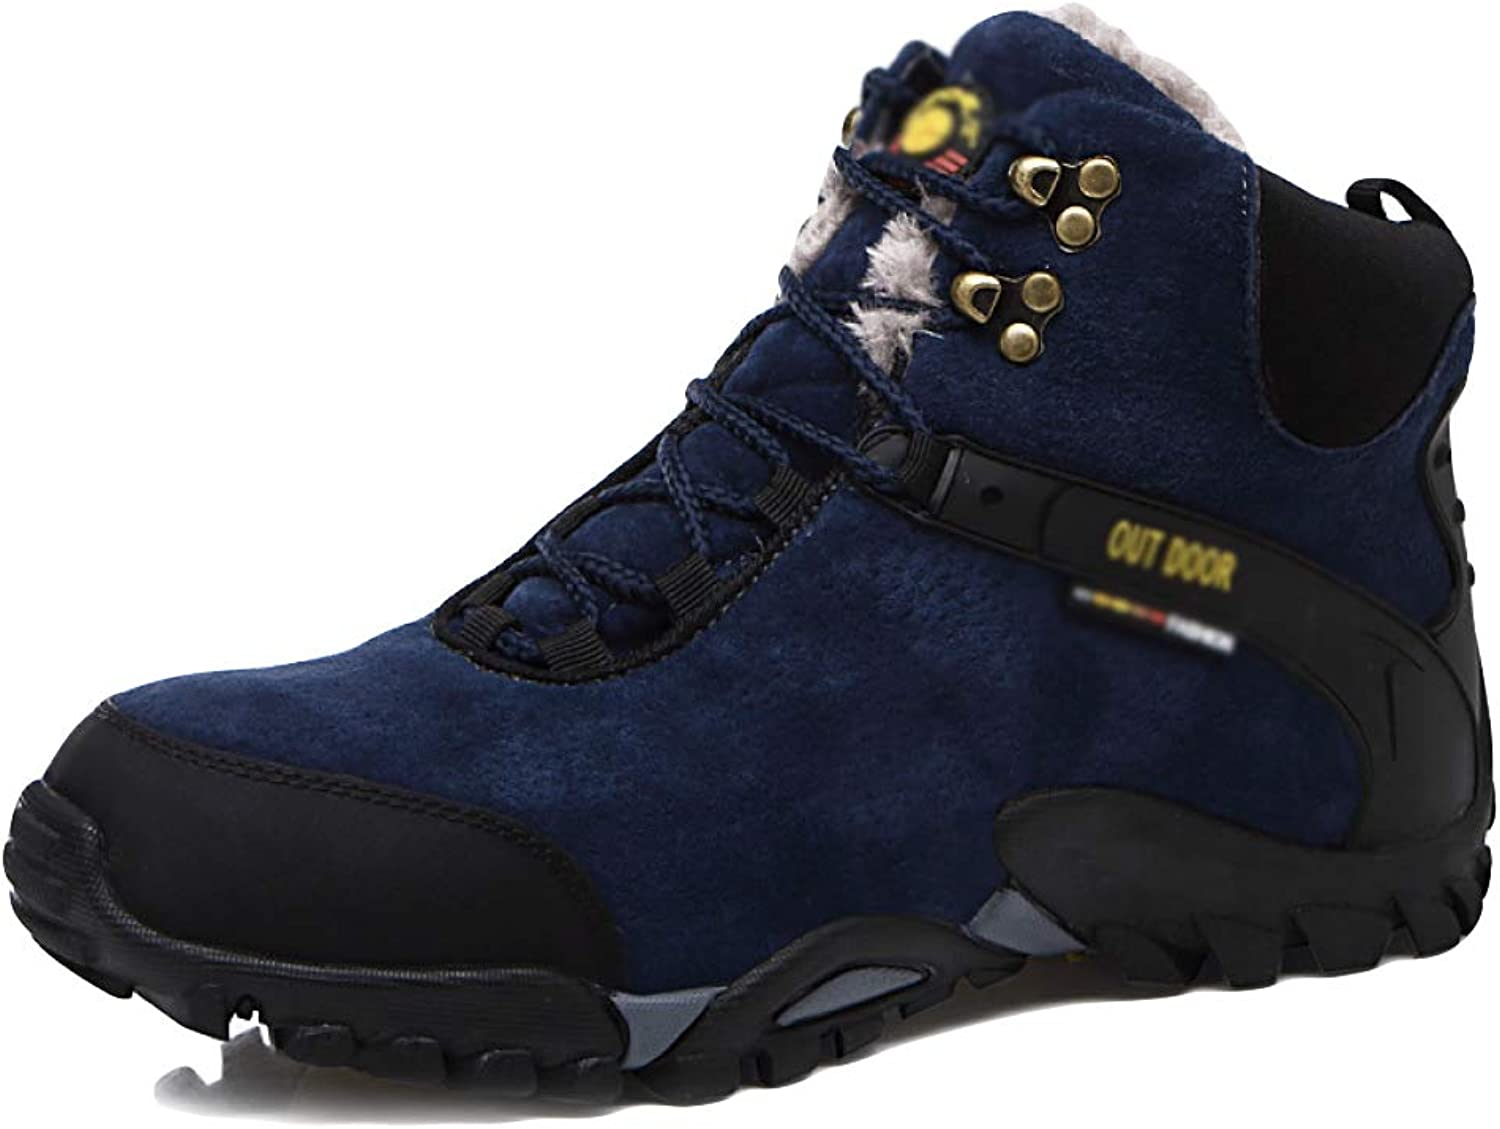 JINGRONG Mens High Help Cotton shoes Plus Velvet Warm Outdoor Sports shoes Non-Slip Hiking Boots Snow Boots(bluee and Black)